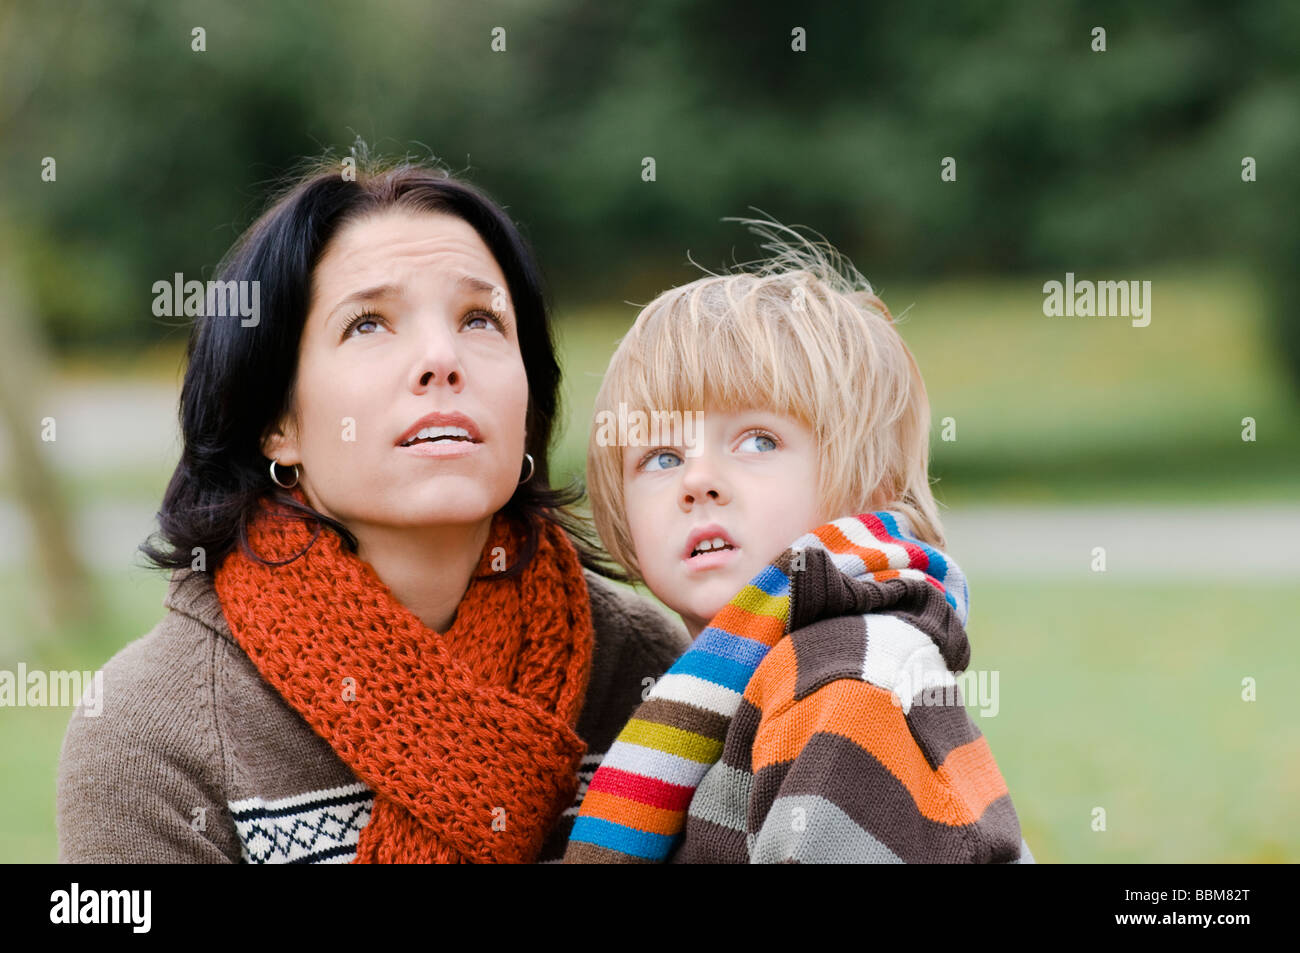 Young woman and boy with concerned expressions looking upward, Vancouver, British Columbia - Stock Image